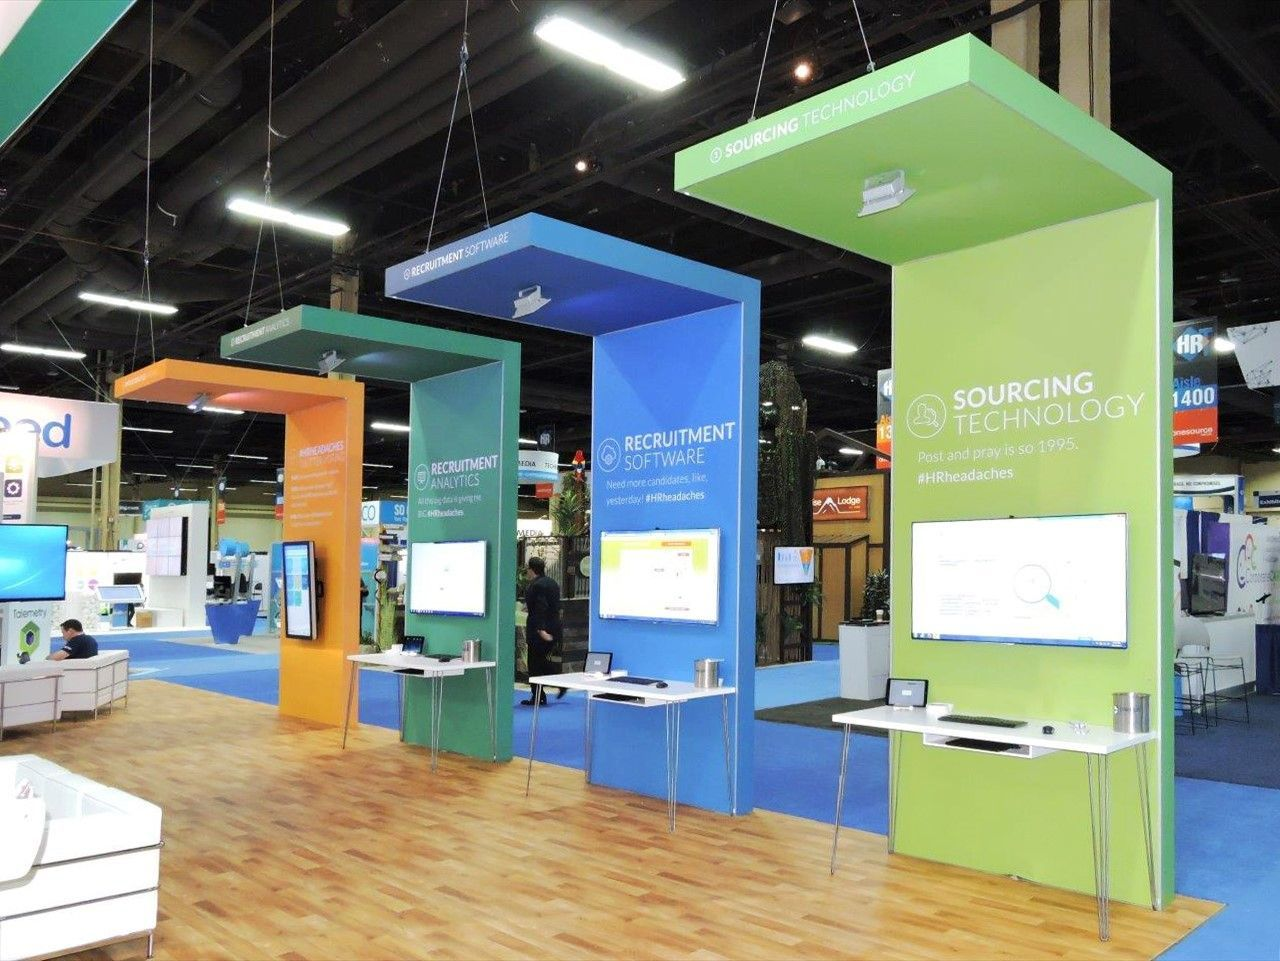 Straight Panel Trade Show Booth Design Ideas in 2020 | Trade ...